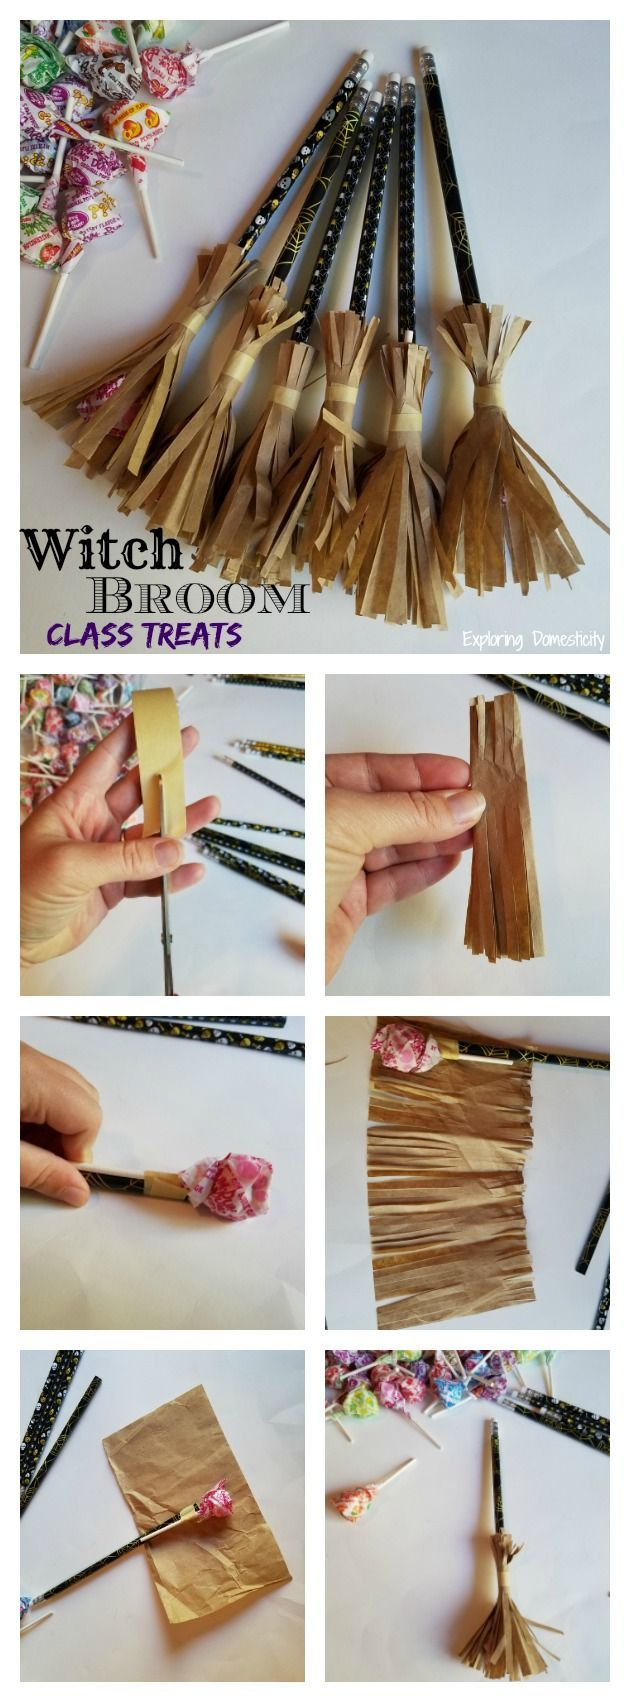 Witch Broom Halloween Class Treats                                                                                                                                                                                 - perfect for candy-free school policies. Perfect DIY for kids and a great treat for the teal pumpkin project  #Halloweencraft #HalloweenDIY #Witch #tealpumpkinproject